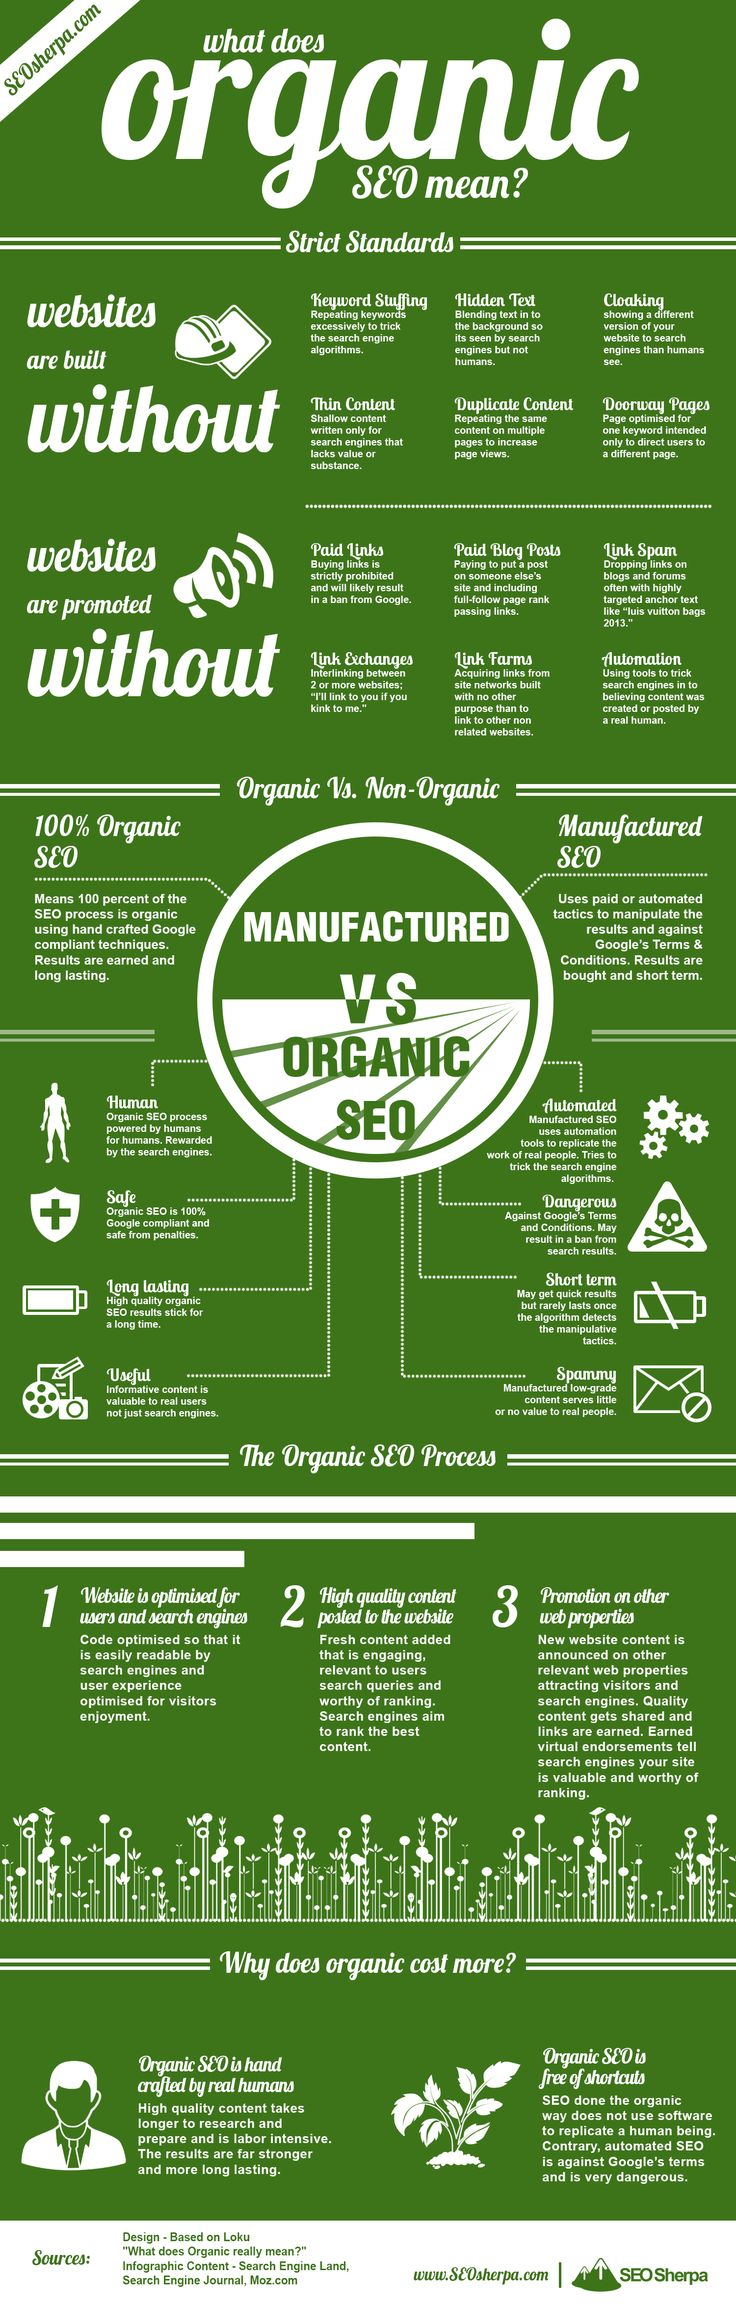 What Does Organic SEO Mean? - This is great summation of Organic SEO that every business owner should understand.  #Infographic #SEO #OrganicSEO